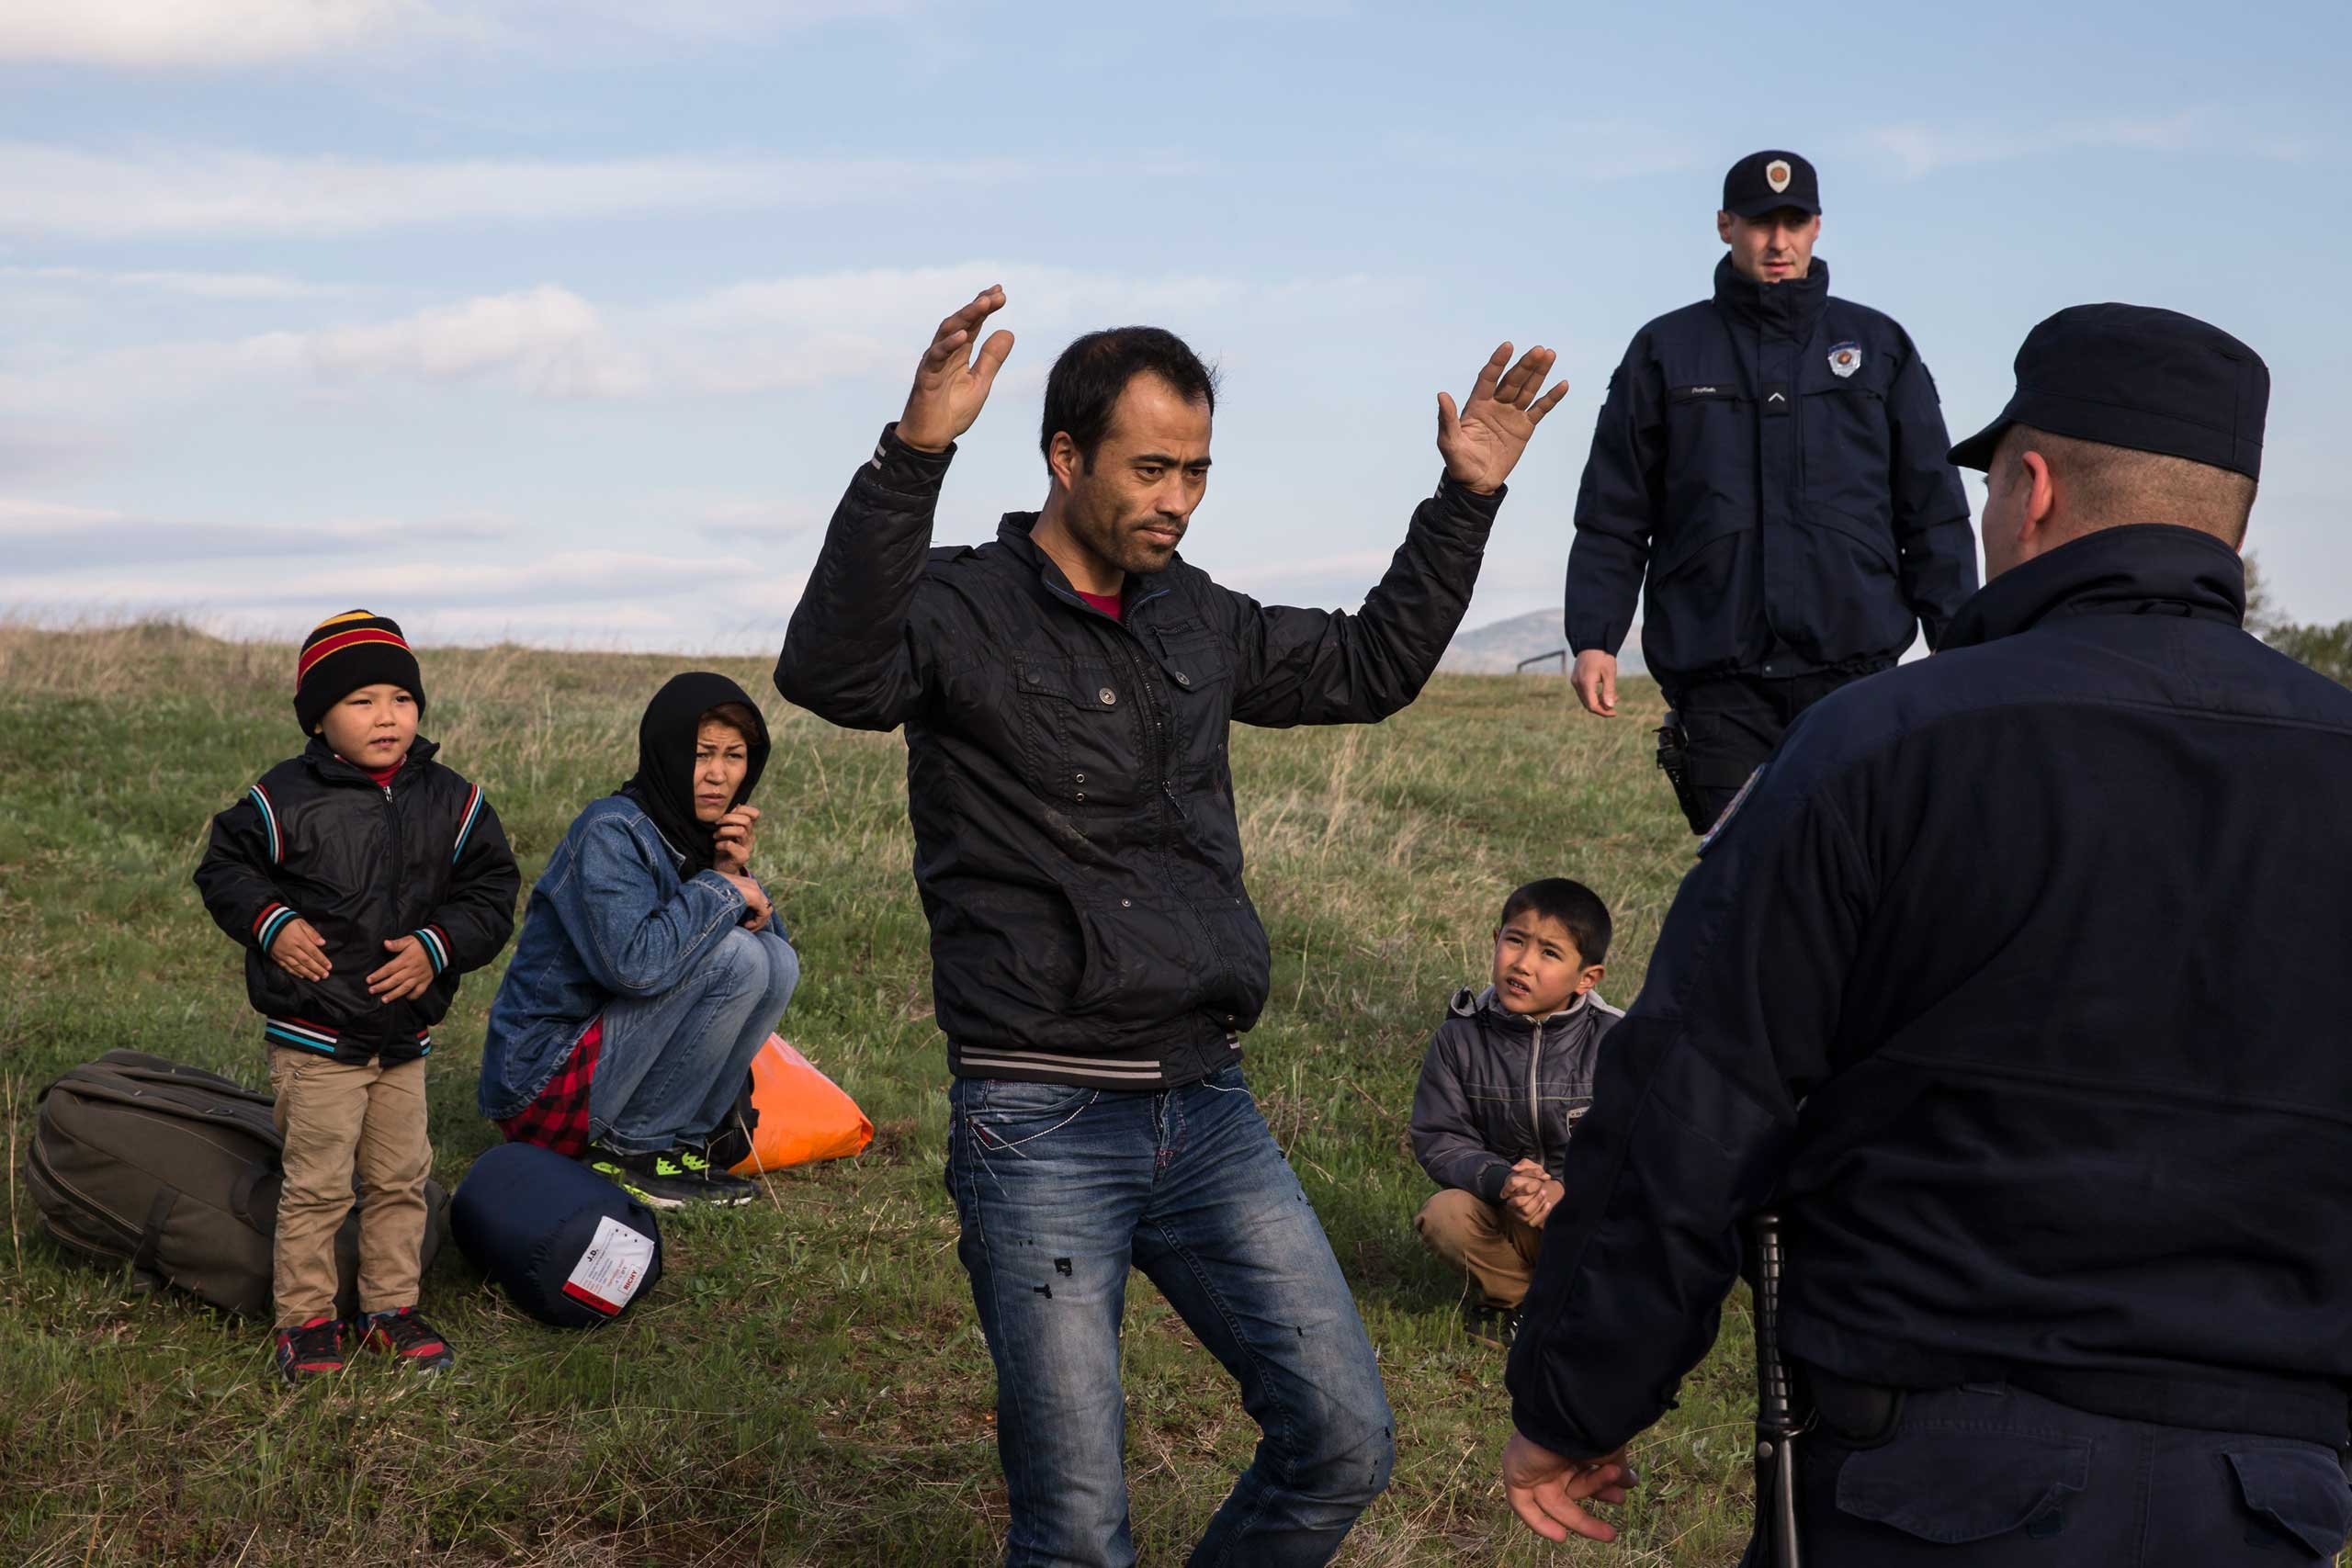 Migrants, who said they were from Afghanistan, sit on a ground after being apprehended by the Serbian border police for having illegally entered the country from Macedonia, near the town of Presevo some 240 miles from capital Belgrade, Serbia on April 29, 2015.